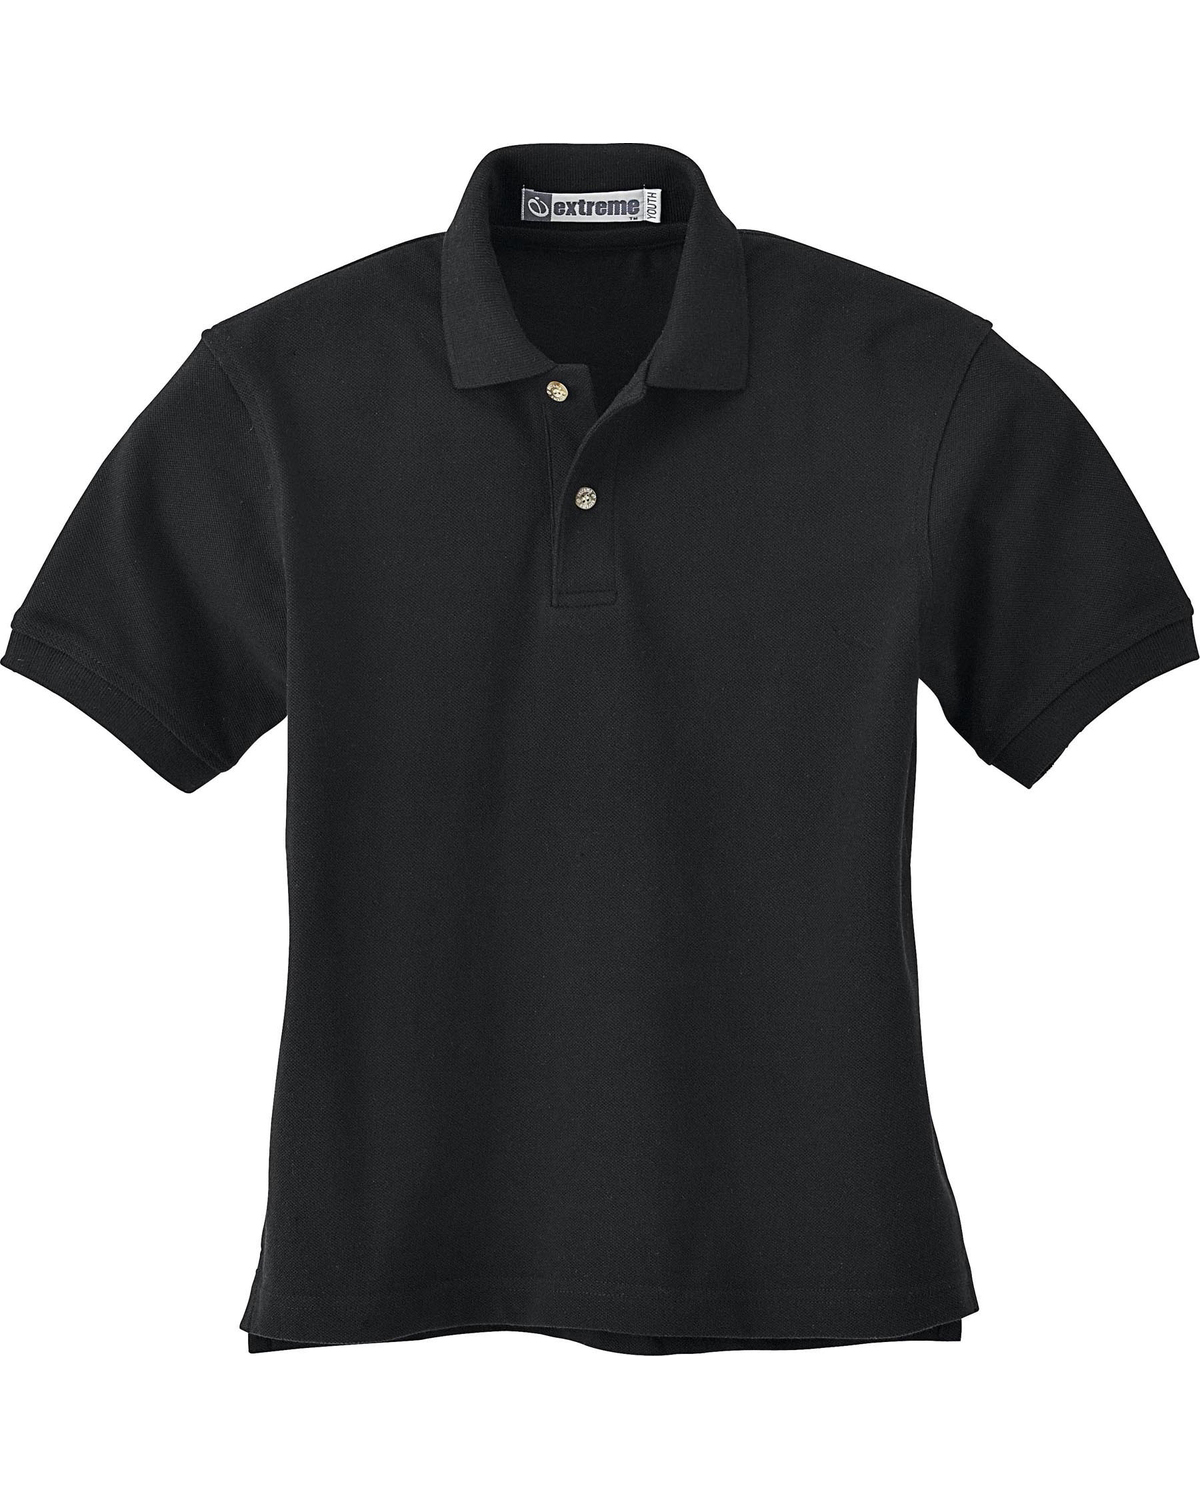 Extreme Youth 60/40 Cotton Poly Pique Polo Shirt 65001